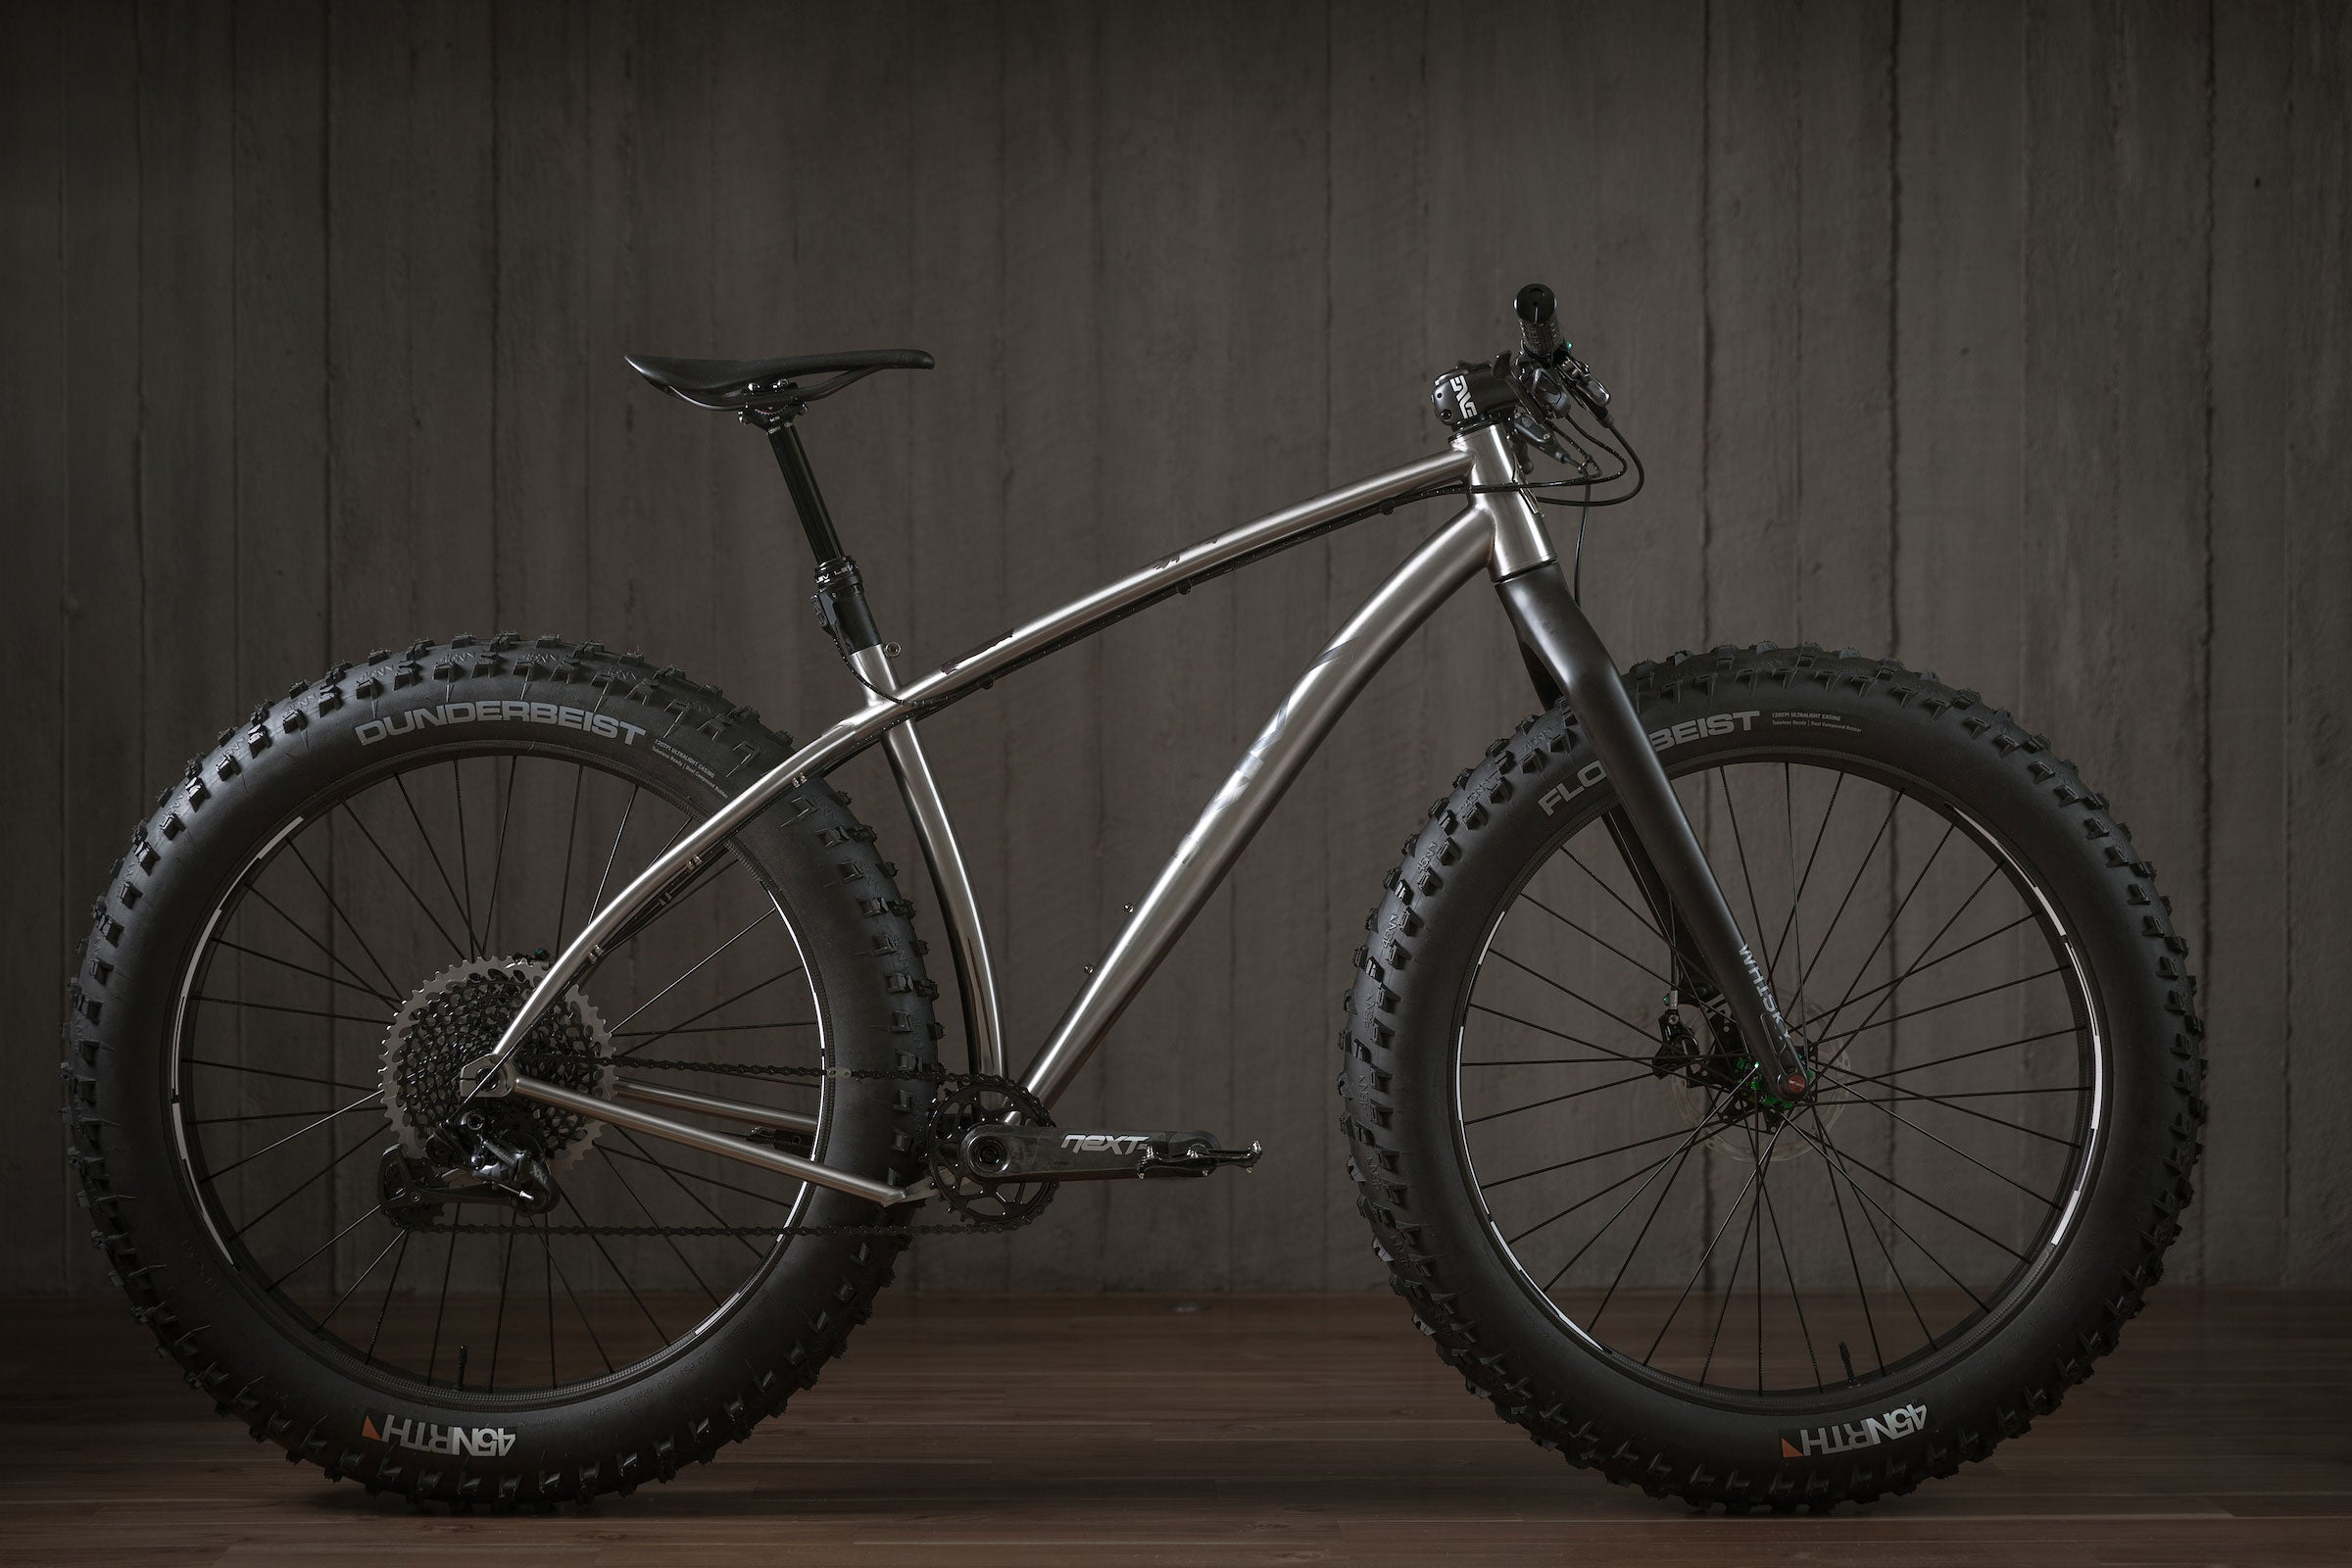 Splinternye Rise Grizzly Titanium Fat Bike – Rise Bikes GT-61